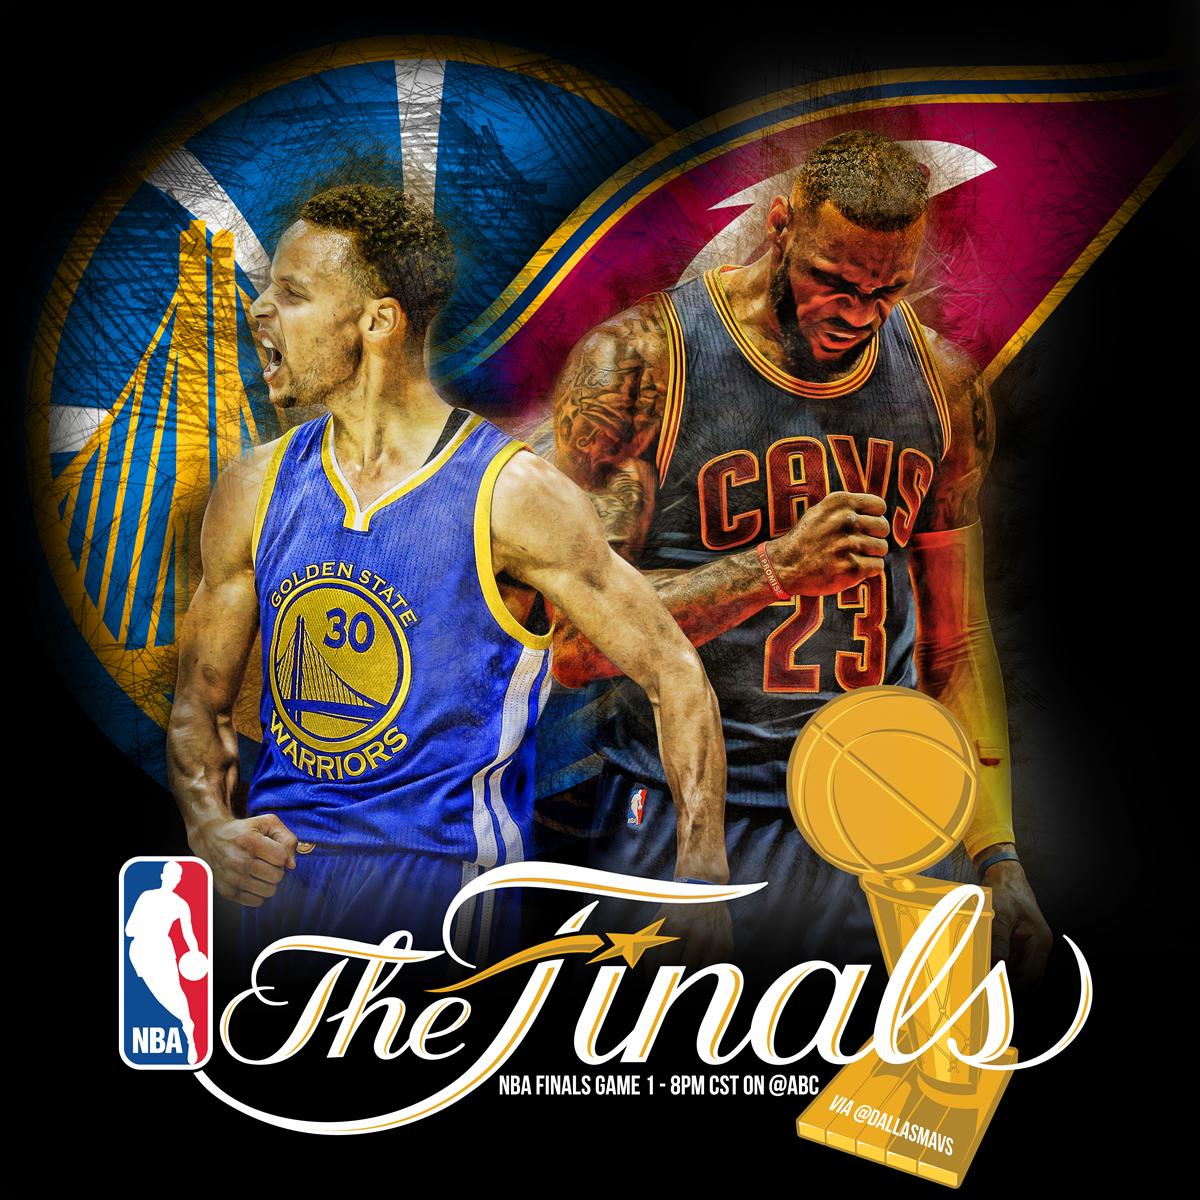 Rockets Vs Warriors Time Central: Congrats To The @warriors & The @cavs On Making It To The